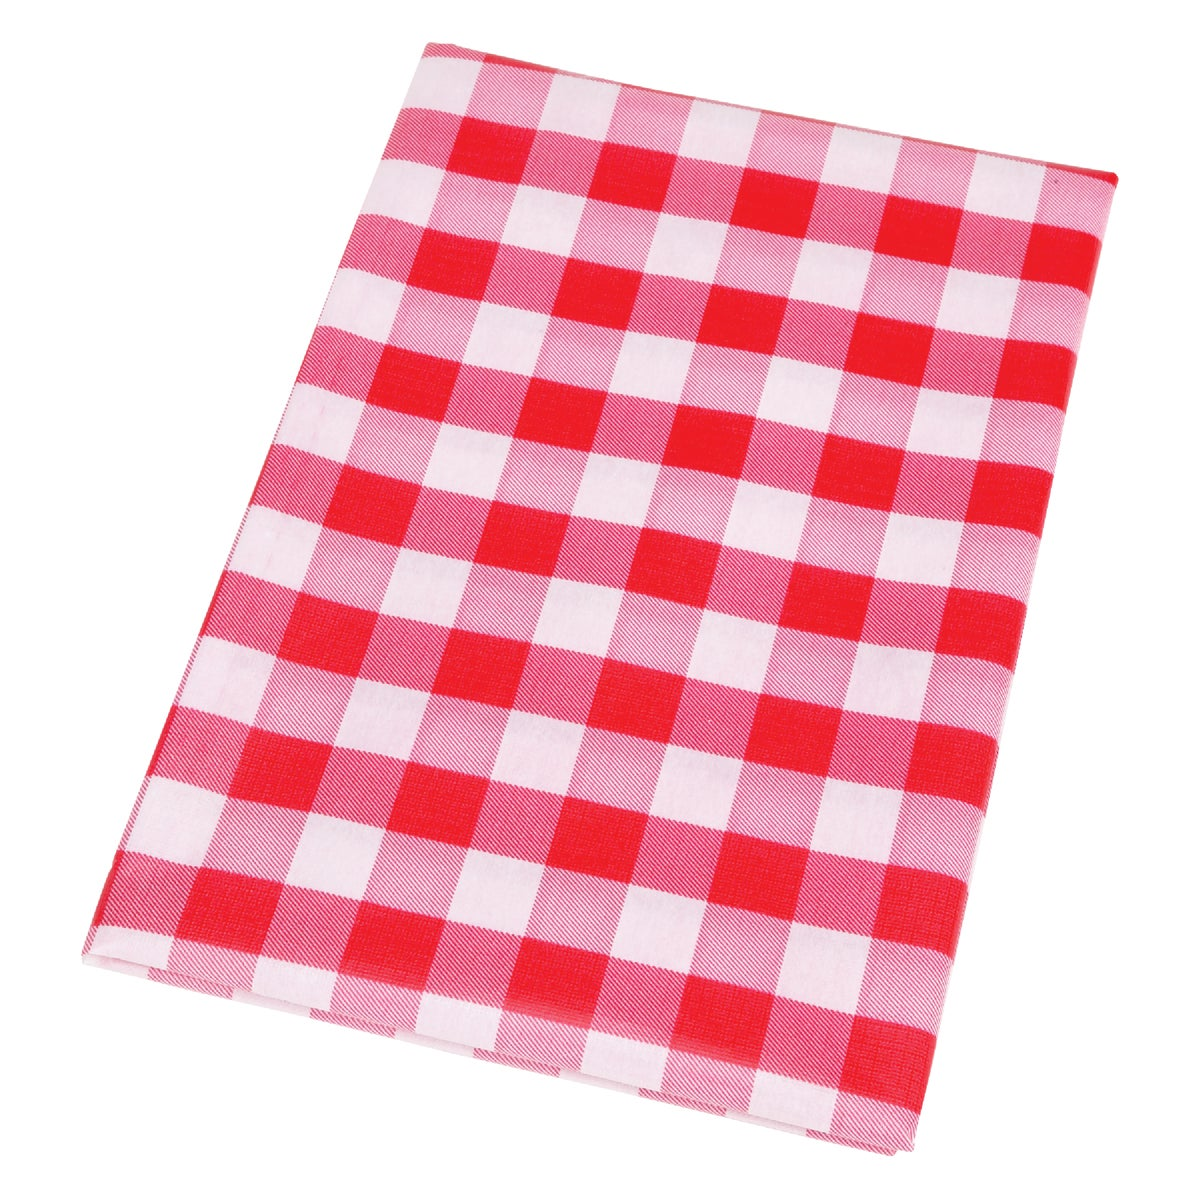 52X52 TABLECLOTH - 4720 by Nordic Shield/epv